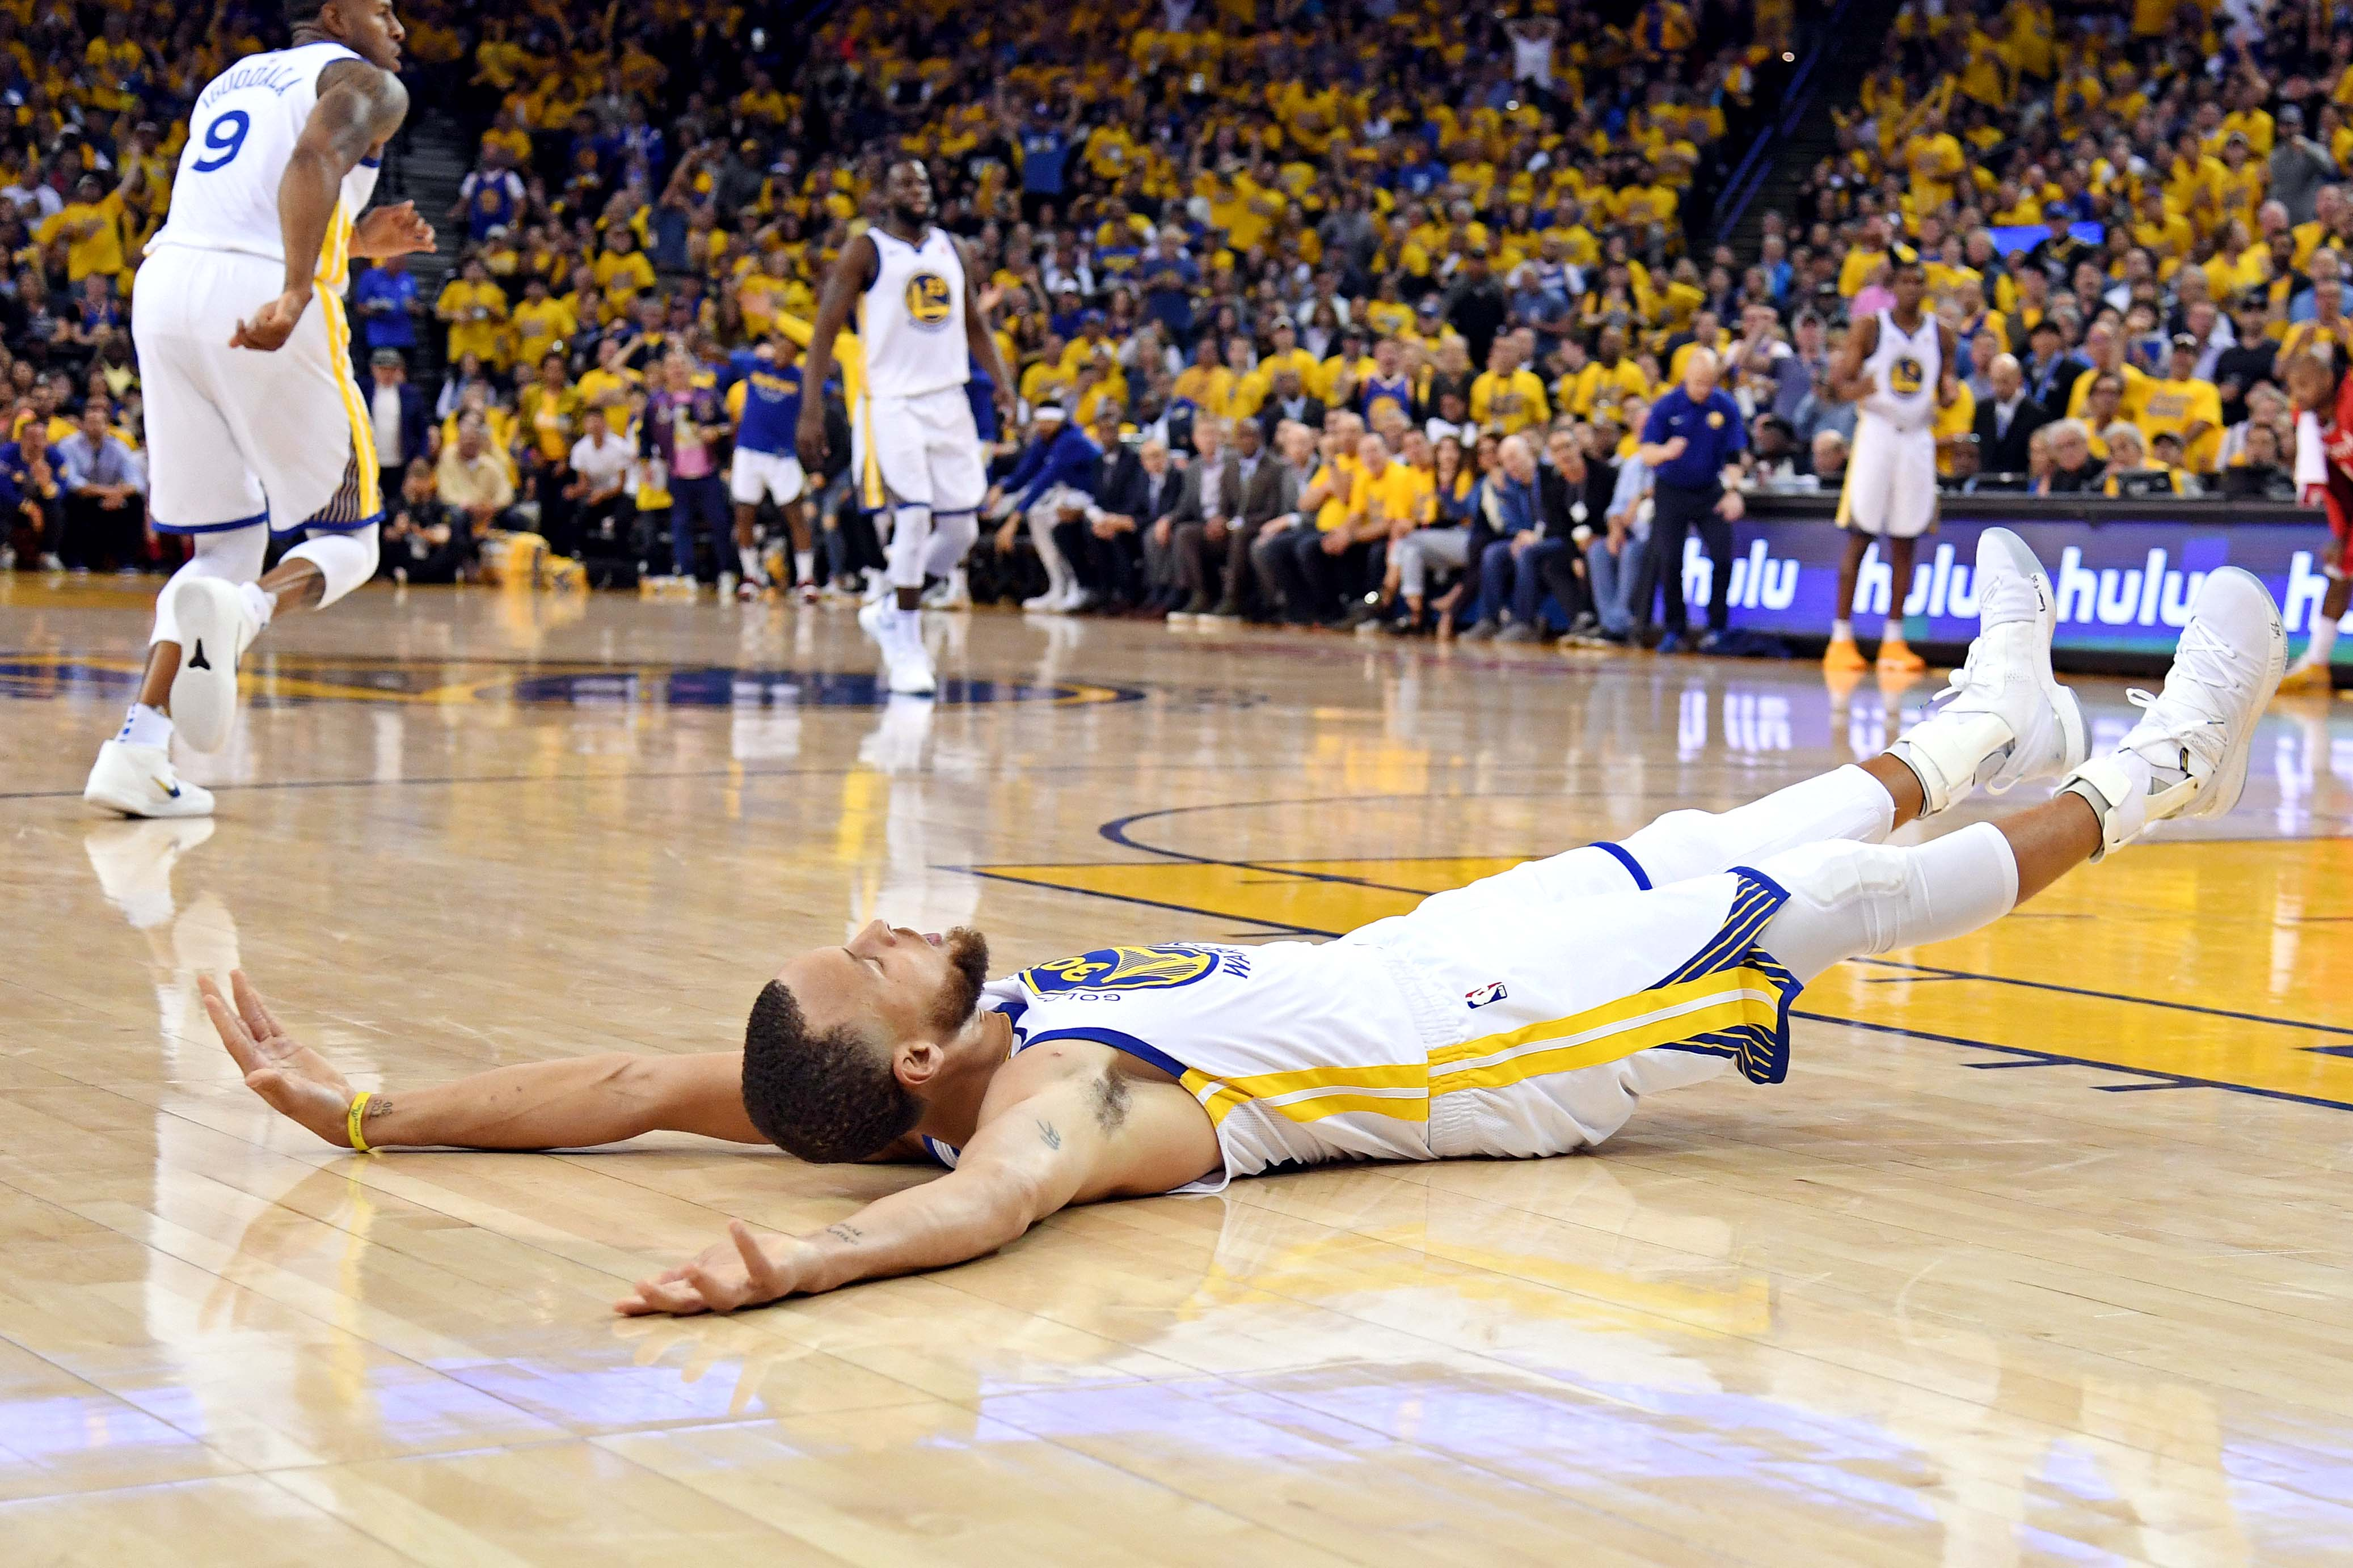 May 20, 2018; Oakland, CA, USA; Golden State Warriors guard Stephen Curry (30) reacts after a play during the third quarter against the Houston Rockets in game three of the Western conference finals of the 2018 NBA Playoffs at Oracle Arena. Mandatory Credit: Kyle Terada-USA TODAY Sports